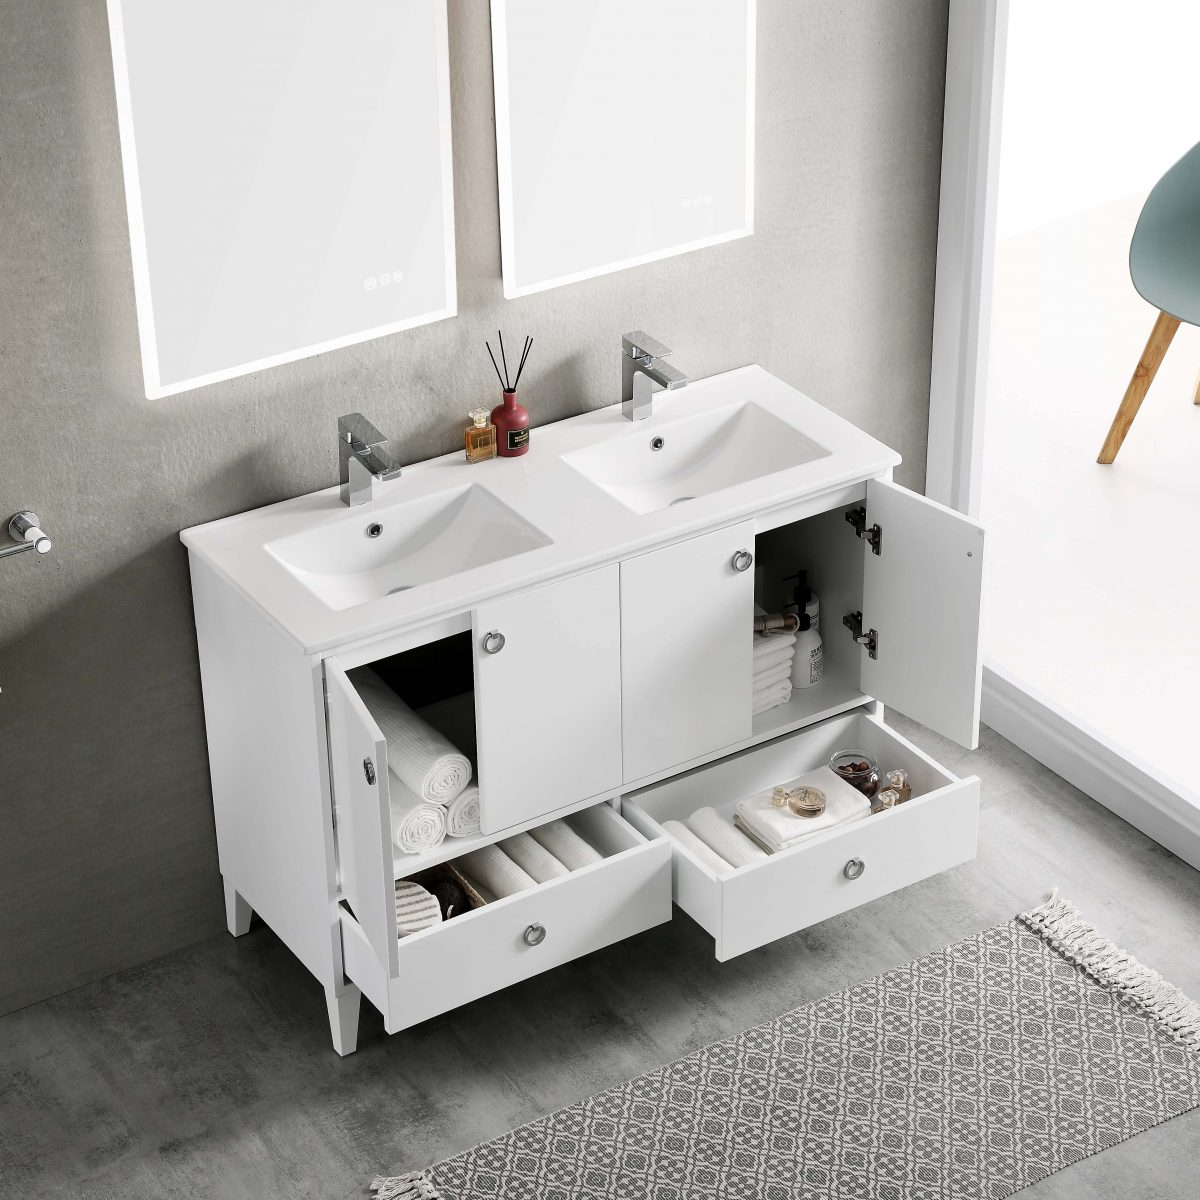 Lyon 48 Inch Vanity – Double Sinks